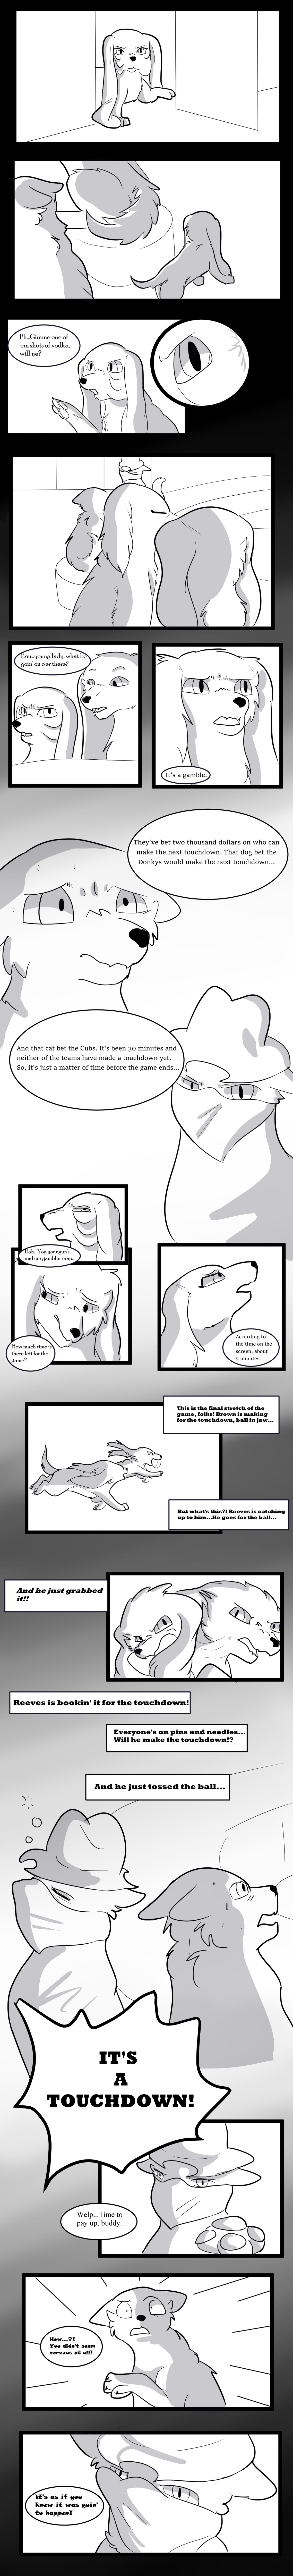 A Cat And A Kitten Comic 2 By Demonfall On Deviantart